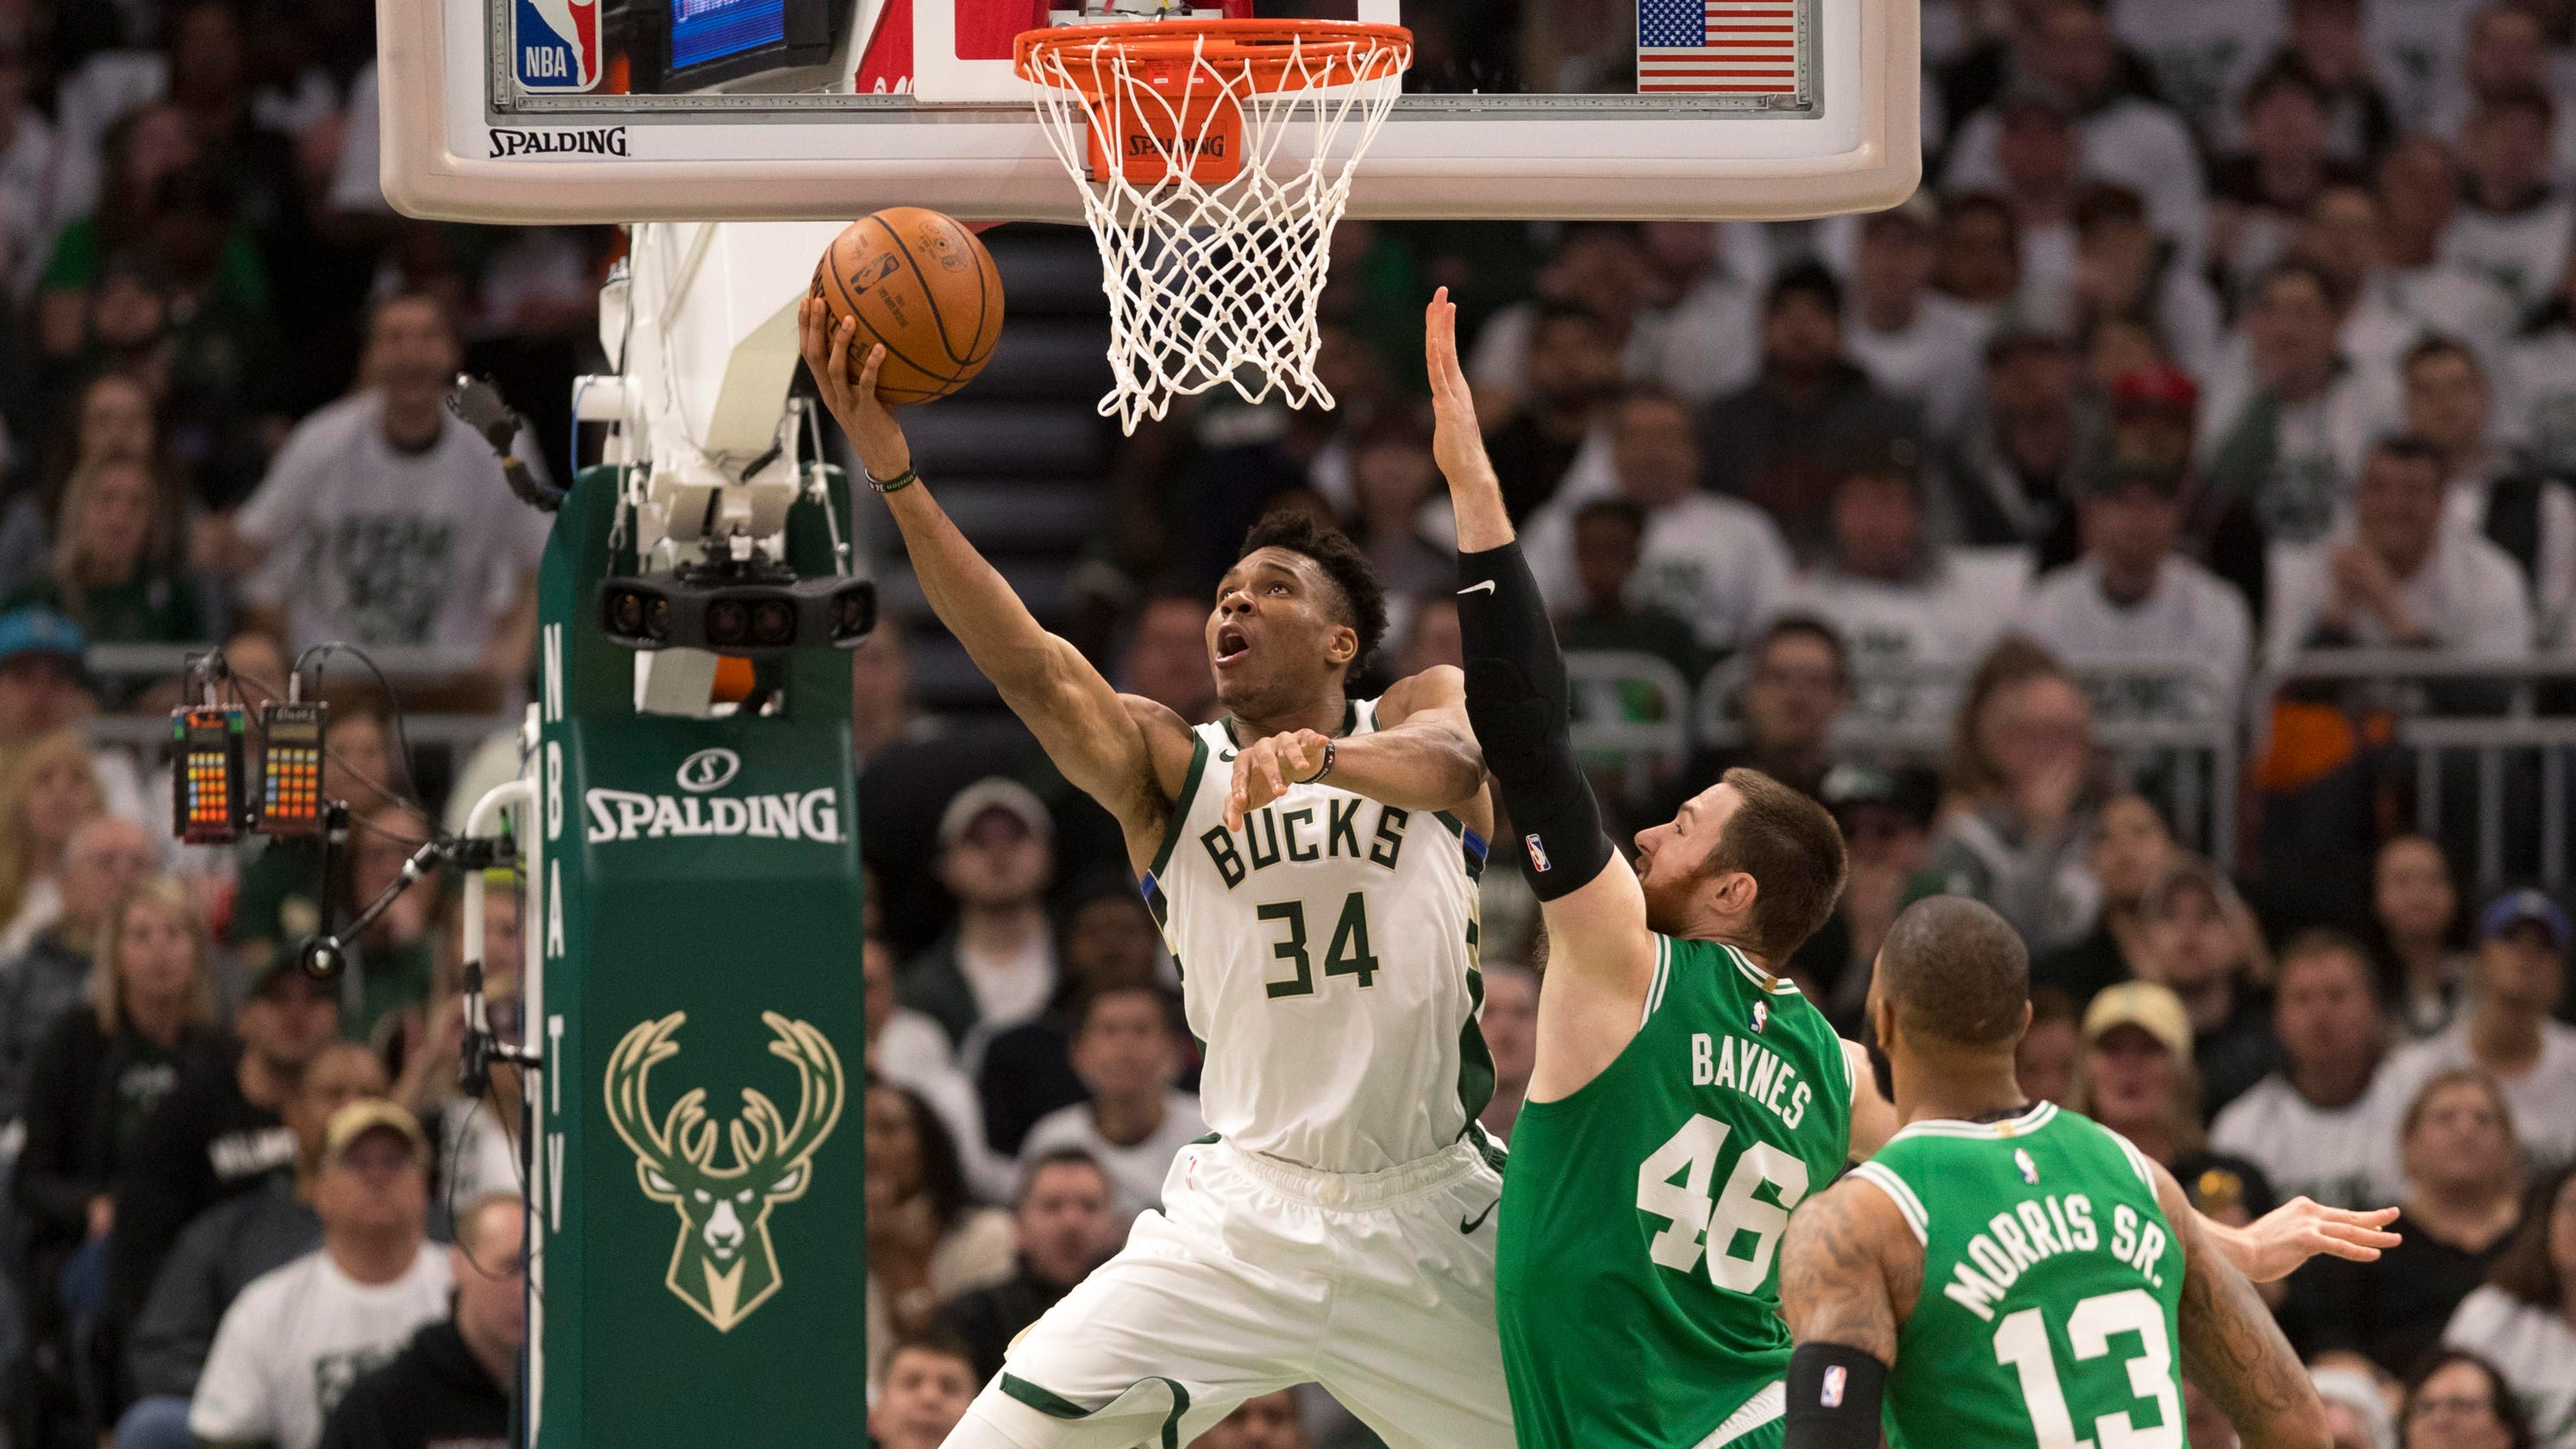 d2508f5f4be6 NBA playoffs  Bucks rout Celtics in Game 2 to tie series 1-1